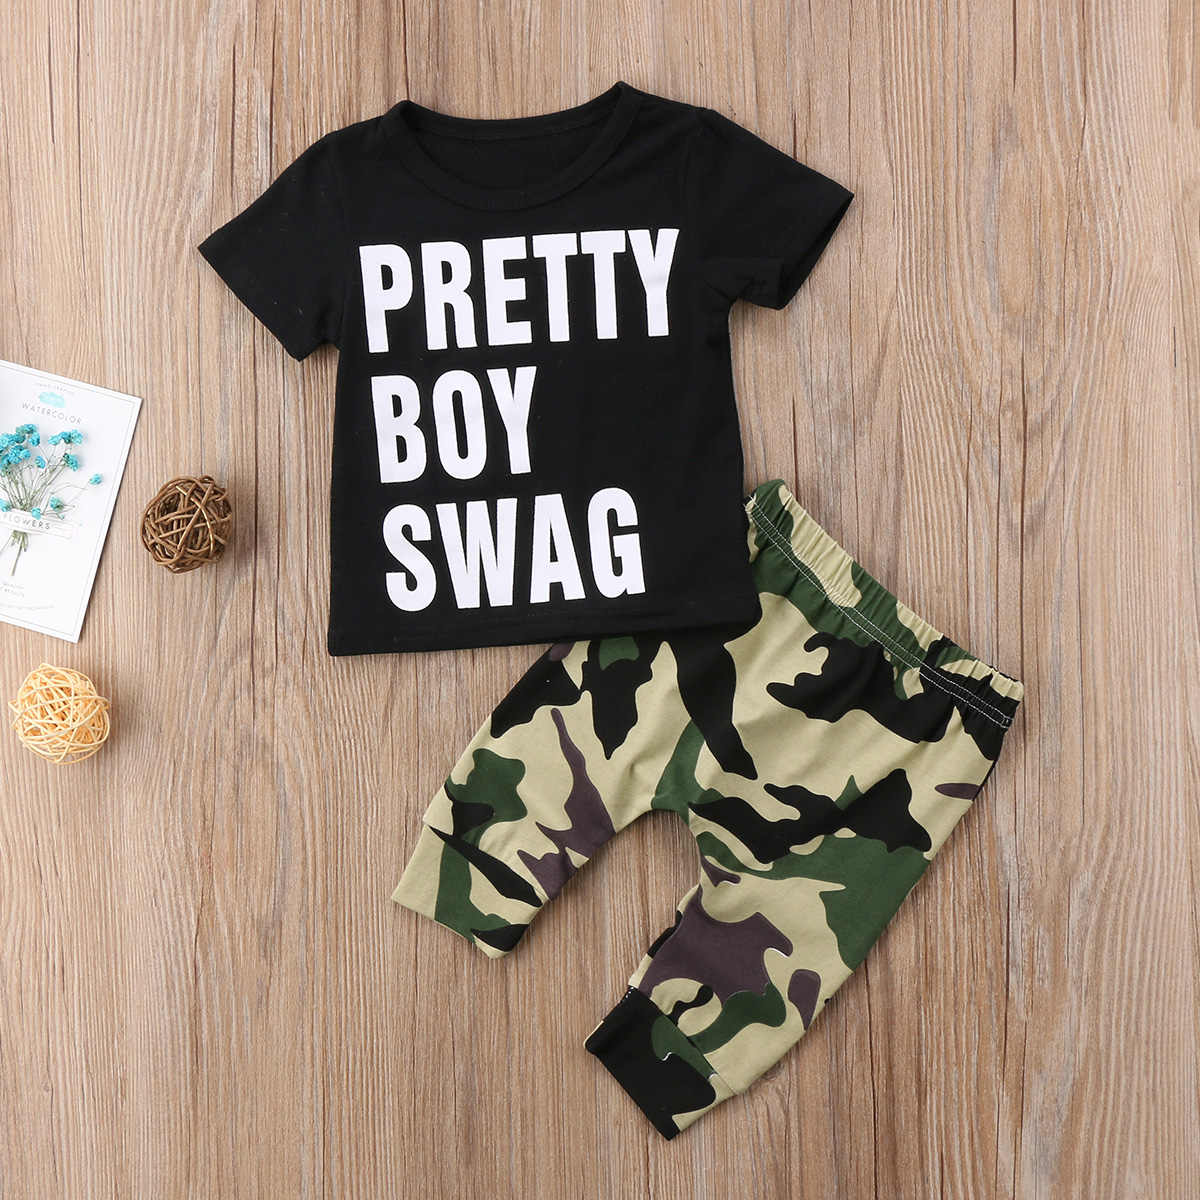 c641ad143dd5e 2pcs Cool Baby Boy Short Sleeve Swag T-shirt Tops+Camouflage Pants Leggings  Outfit Toddler Kids Summer Clothes Set